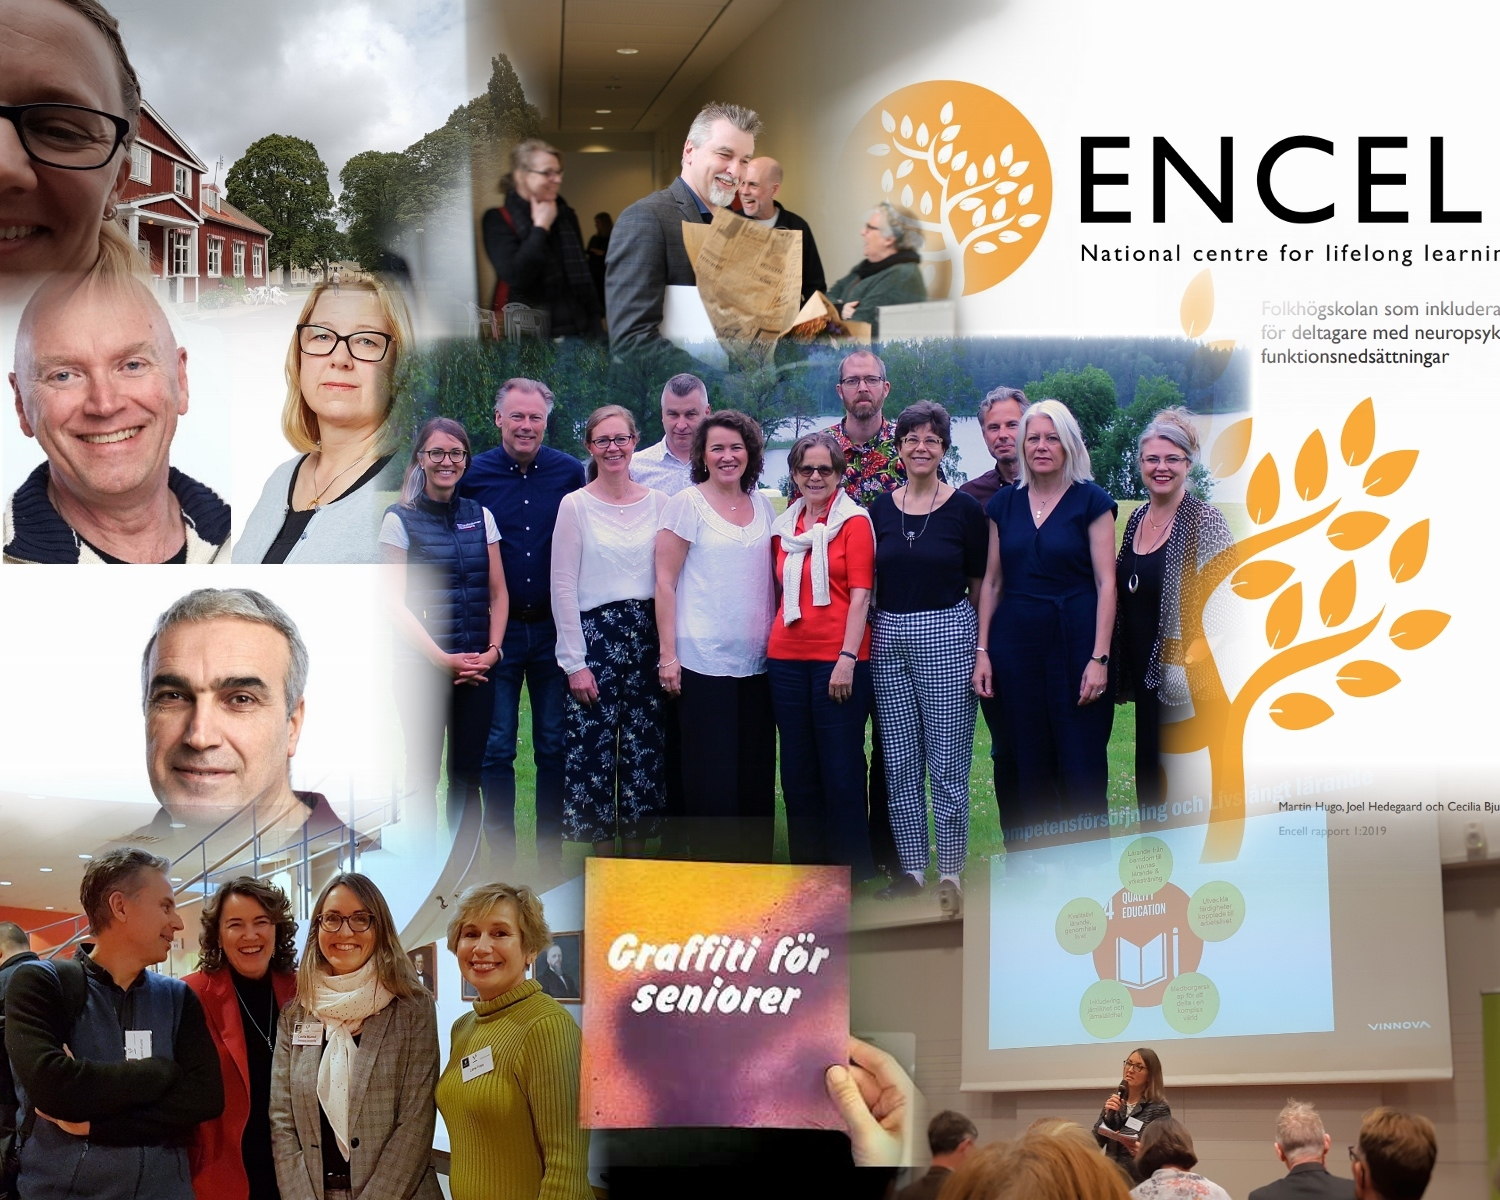 Encell 2019